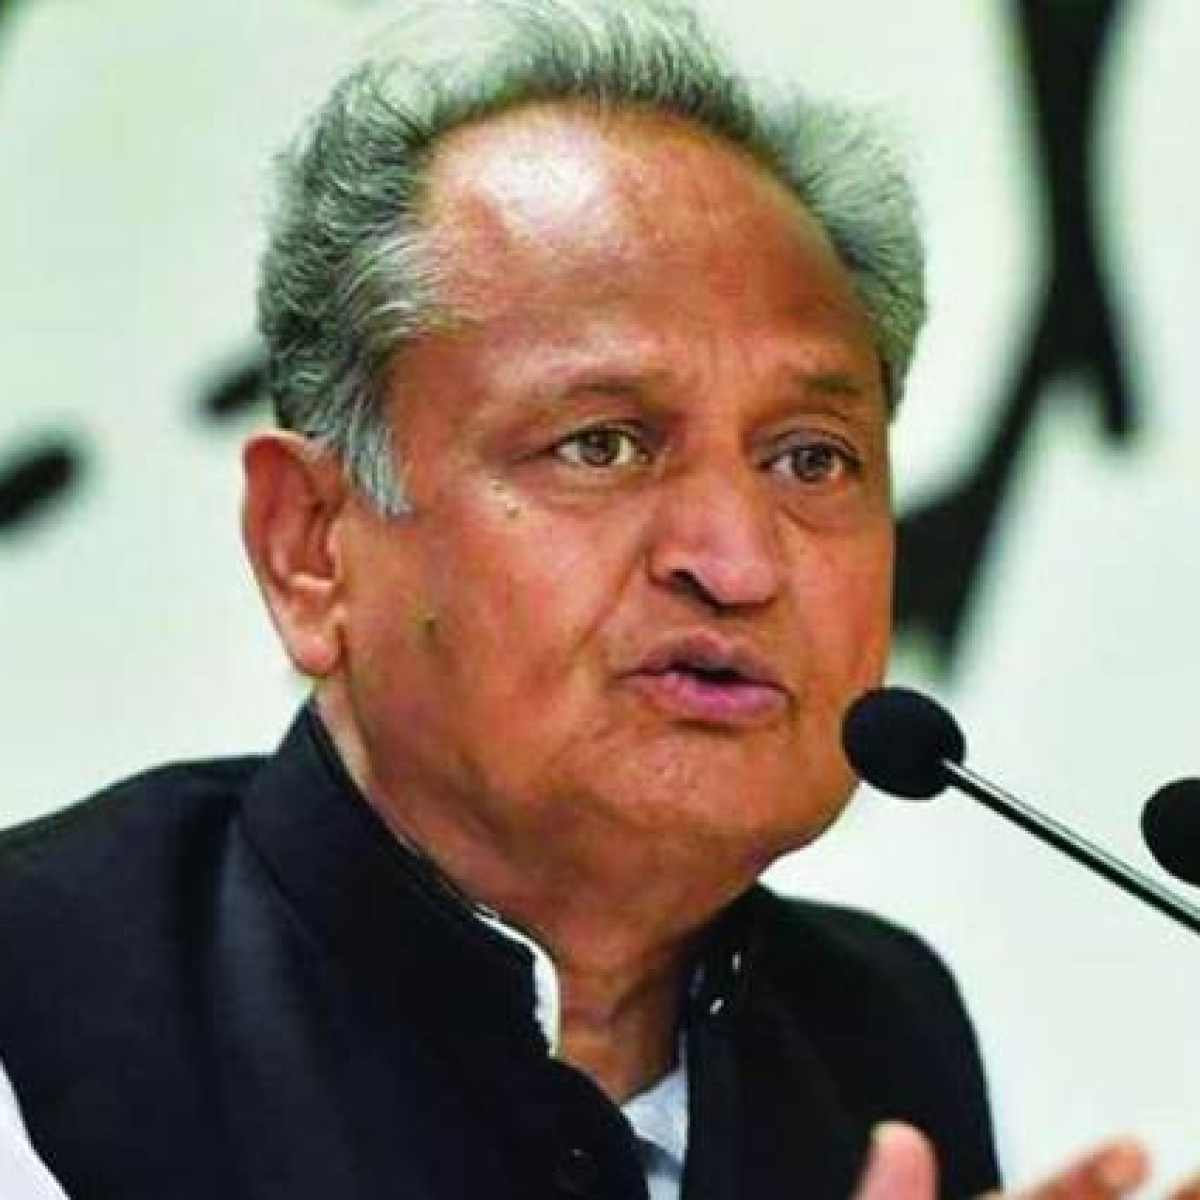 From Jaipur to Jaisalmer: Ashok Gehlot explains why Rajasthan Congress MLAs were shifted